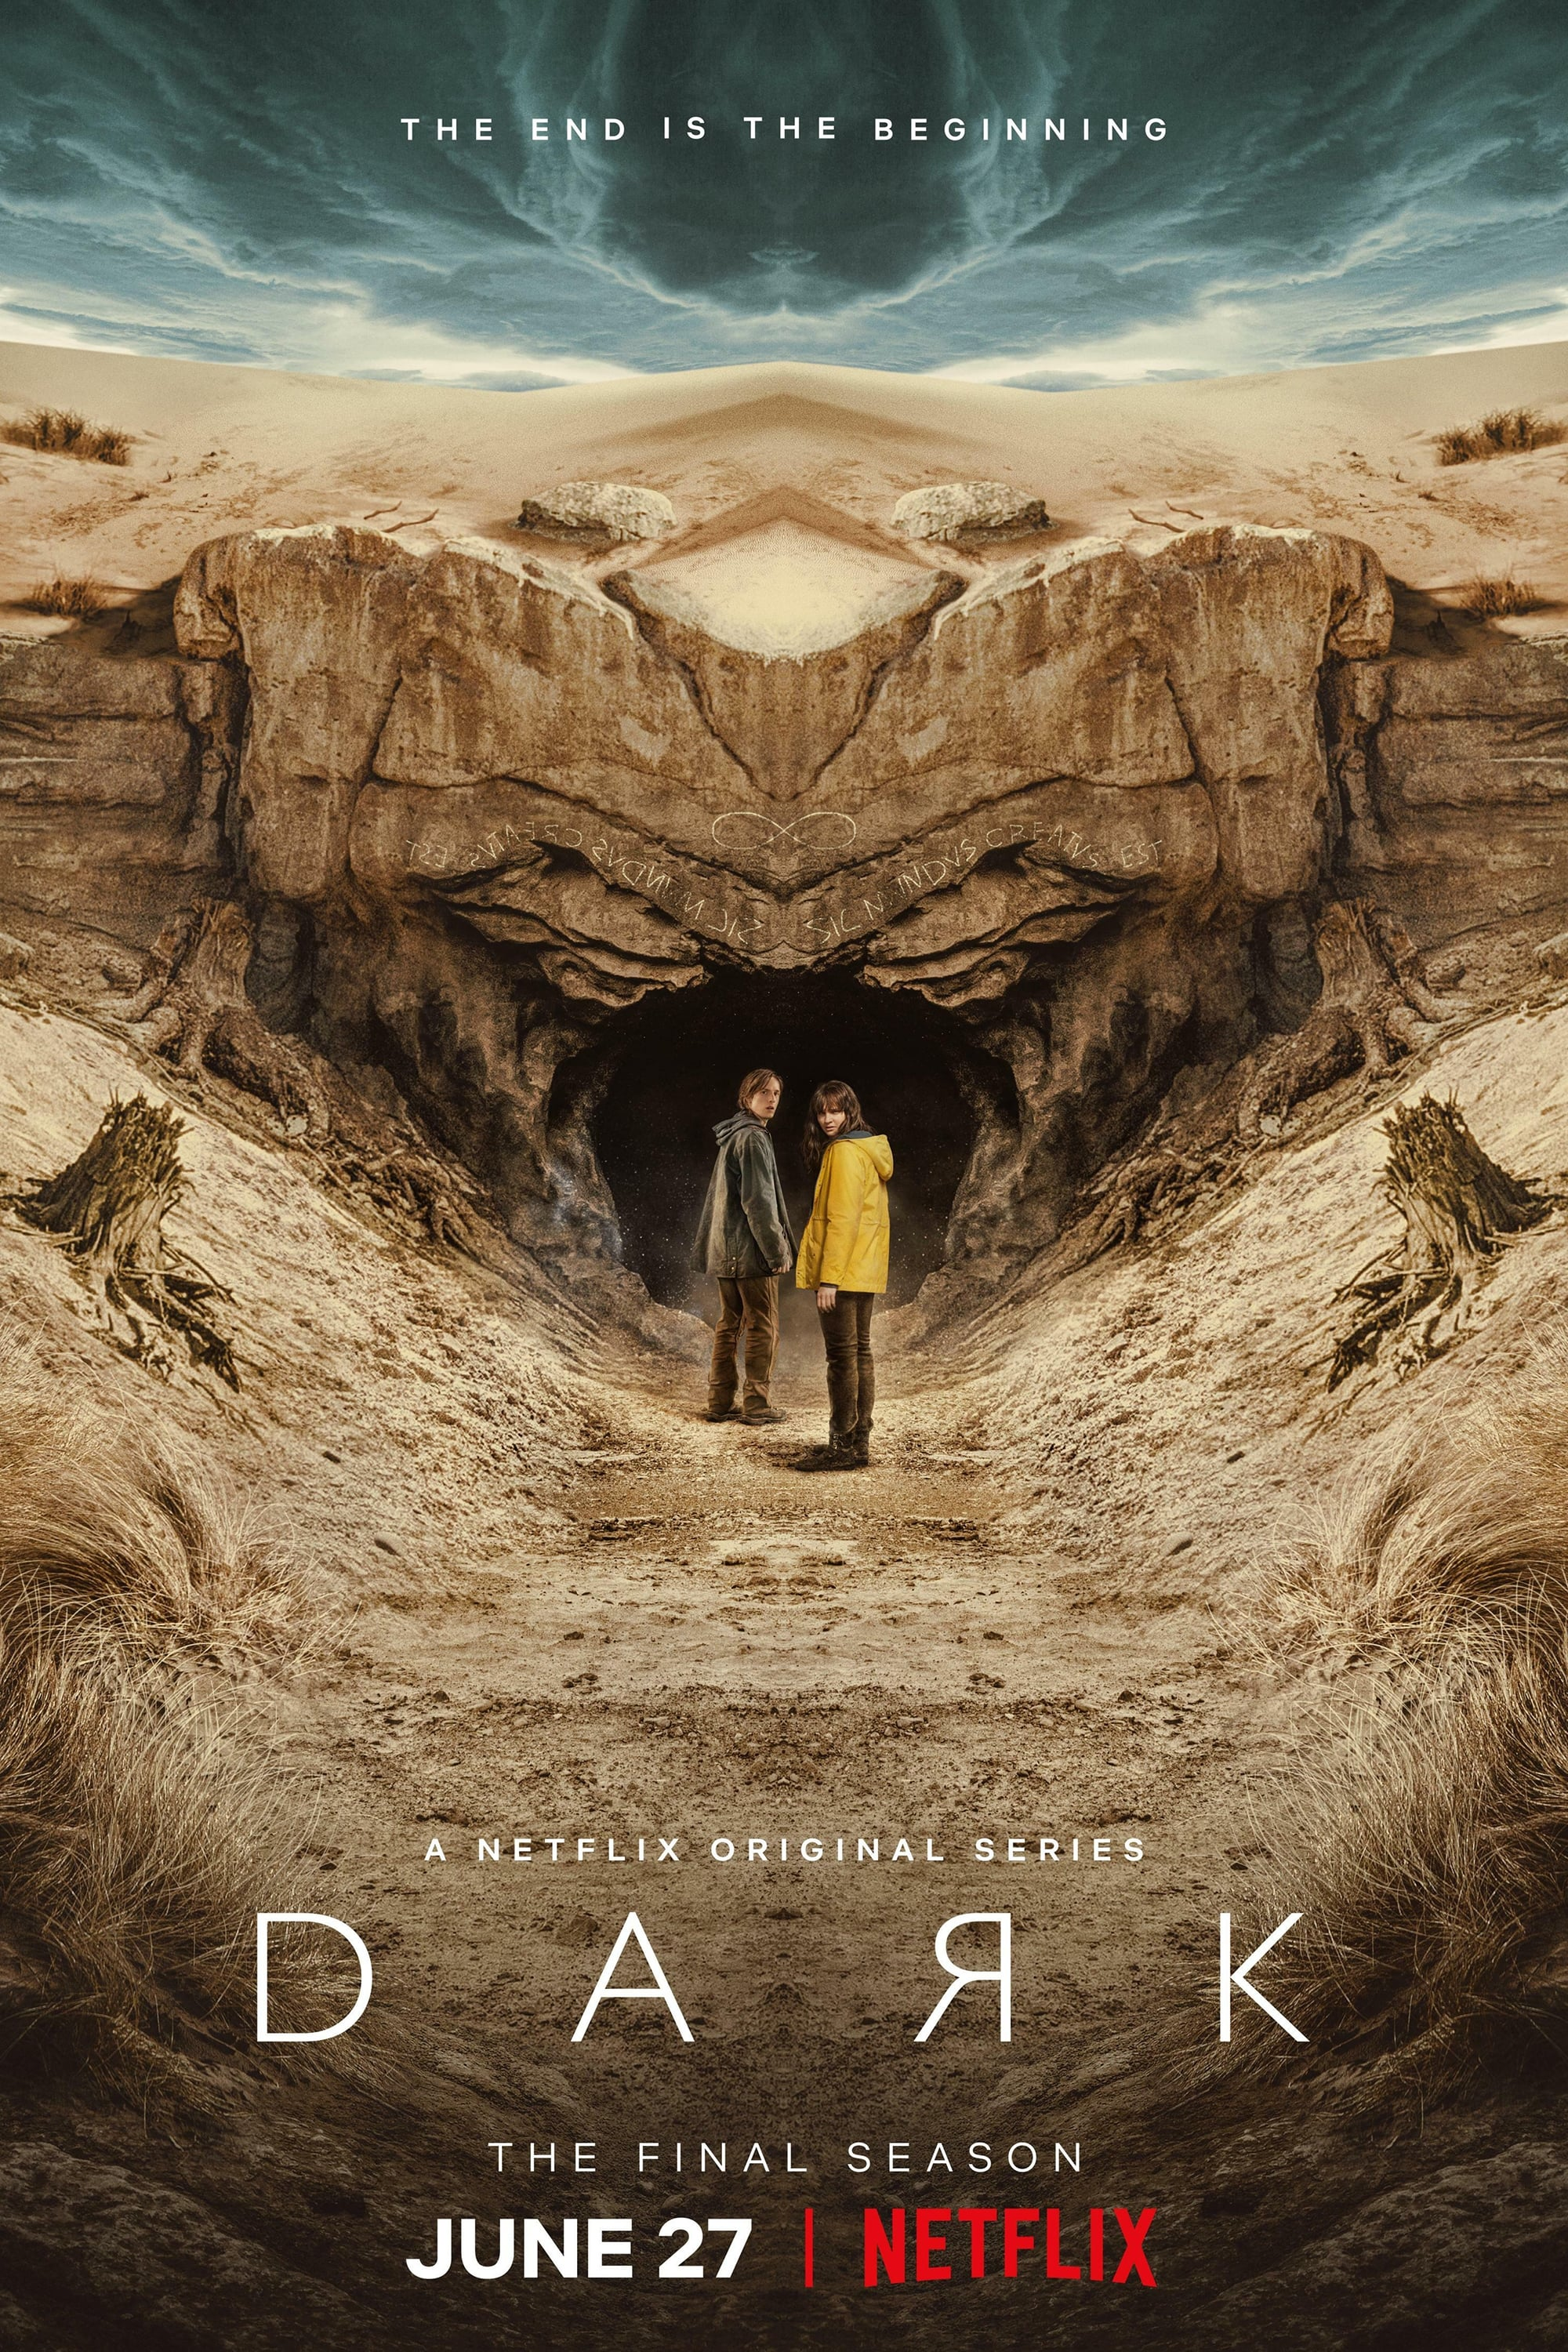 Dark S03 [German+English] | x264 NF WEB-DL | 1080p | 720p | 480p | Download Netflix Exclusive